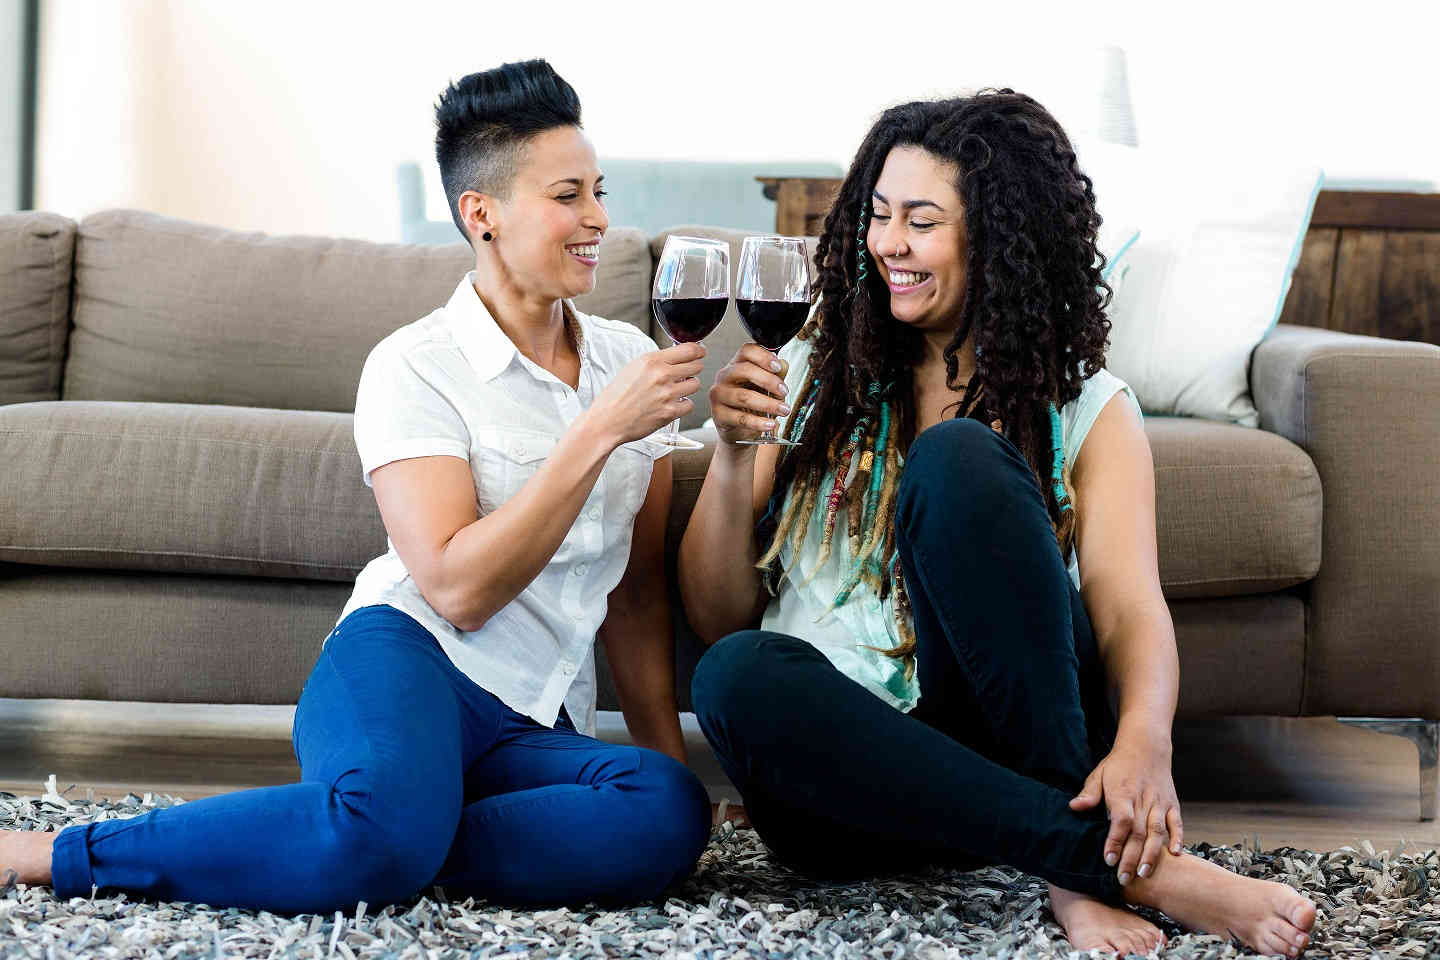 smiling-lesbian-couple-drinking-wine-new-home